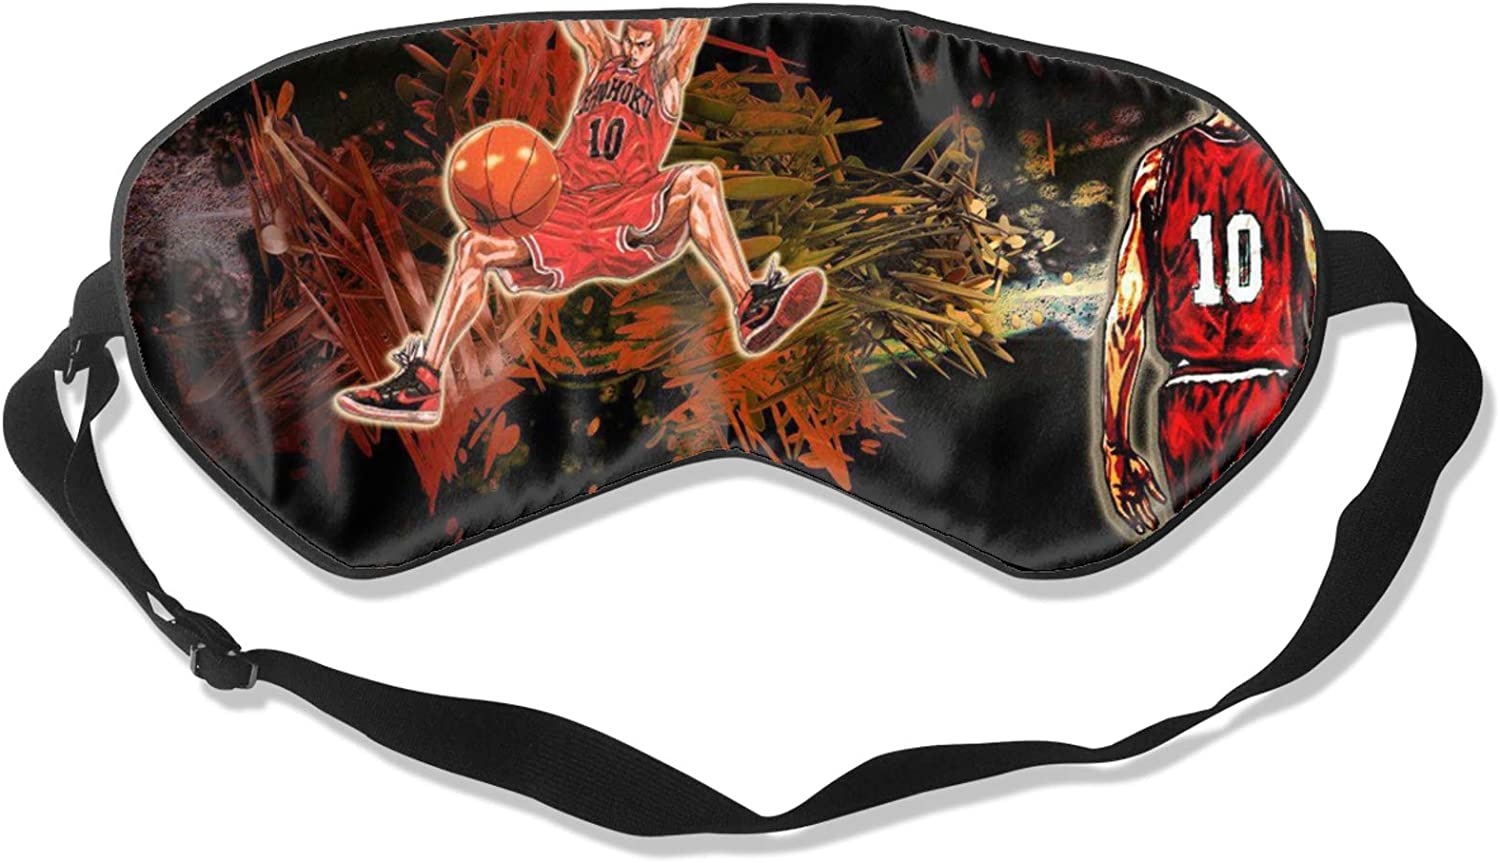 Slam Dunk 25% OFF Sleeping Eye Mask Silky and S favorite Breathable Comfortable